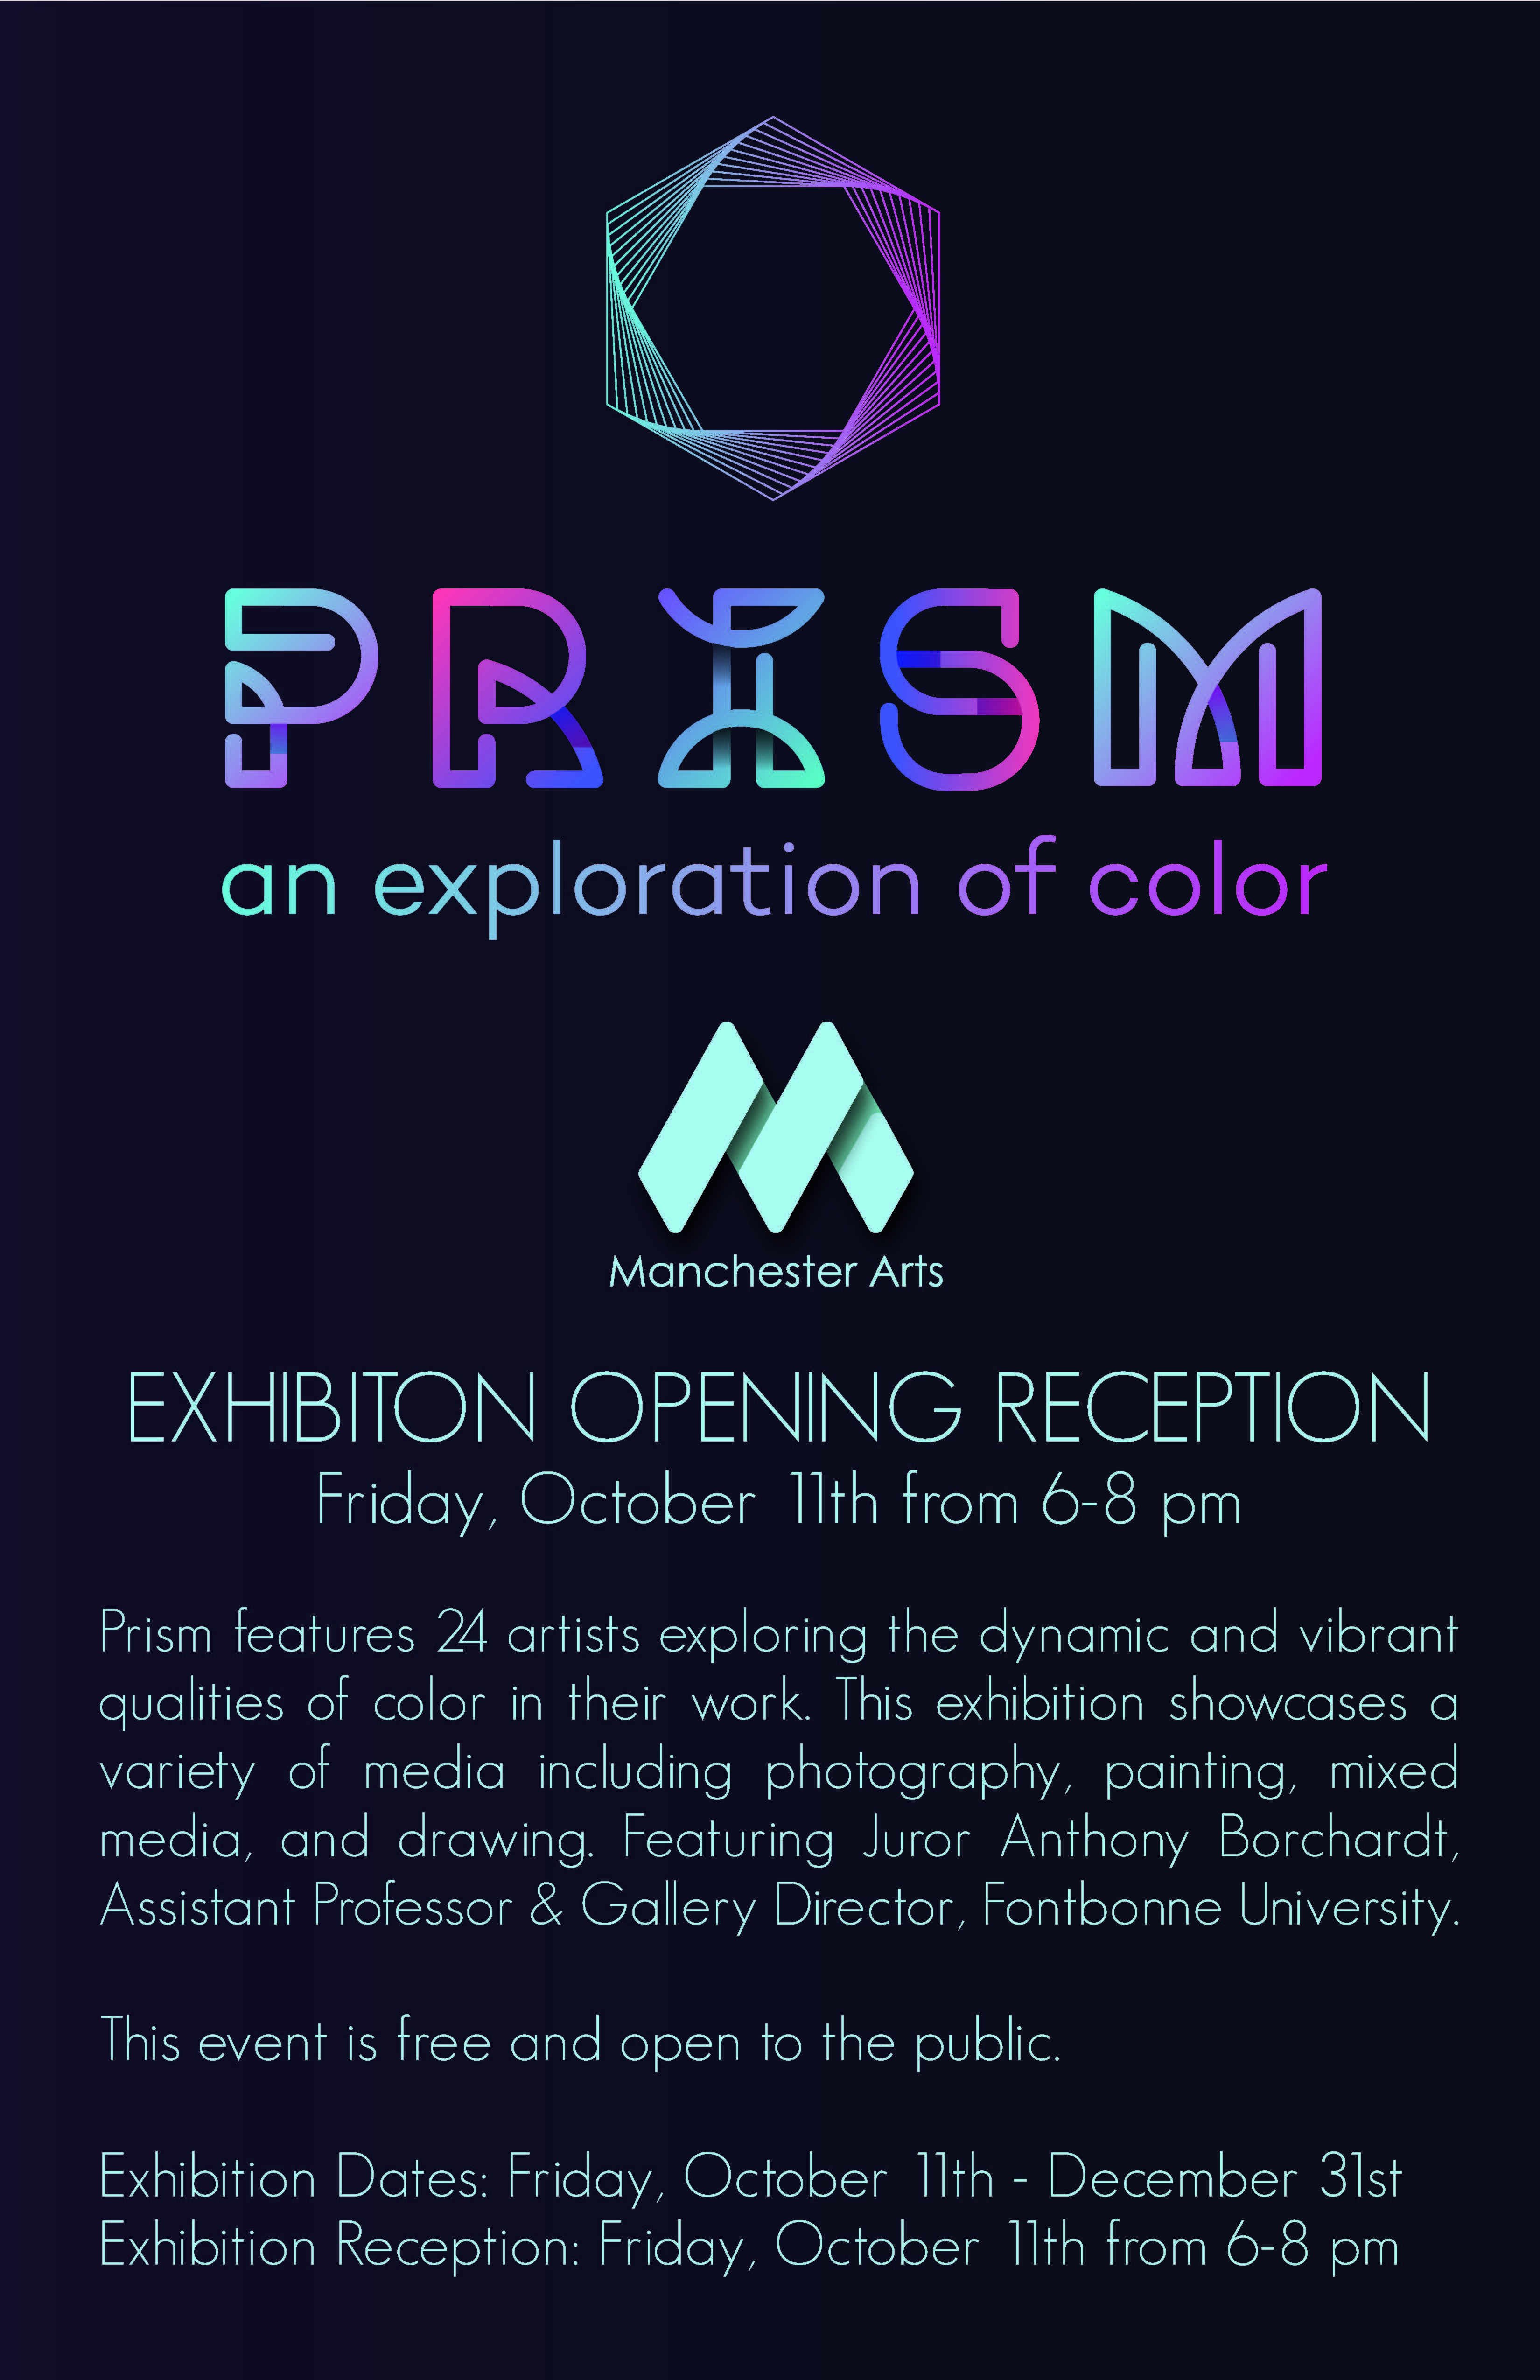 Prism Exhibition Poster 11x17